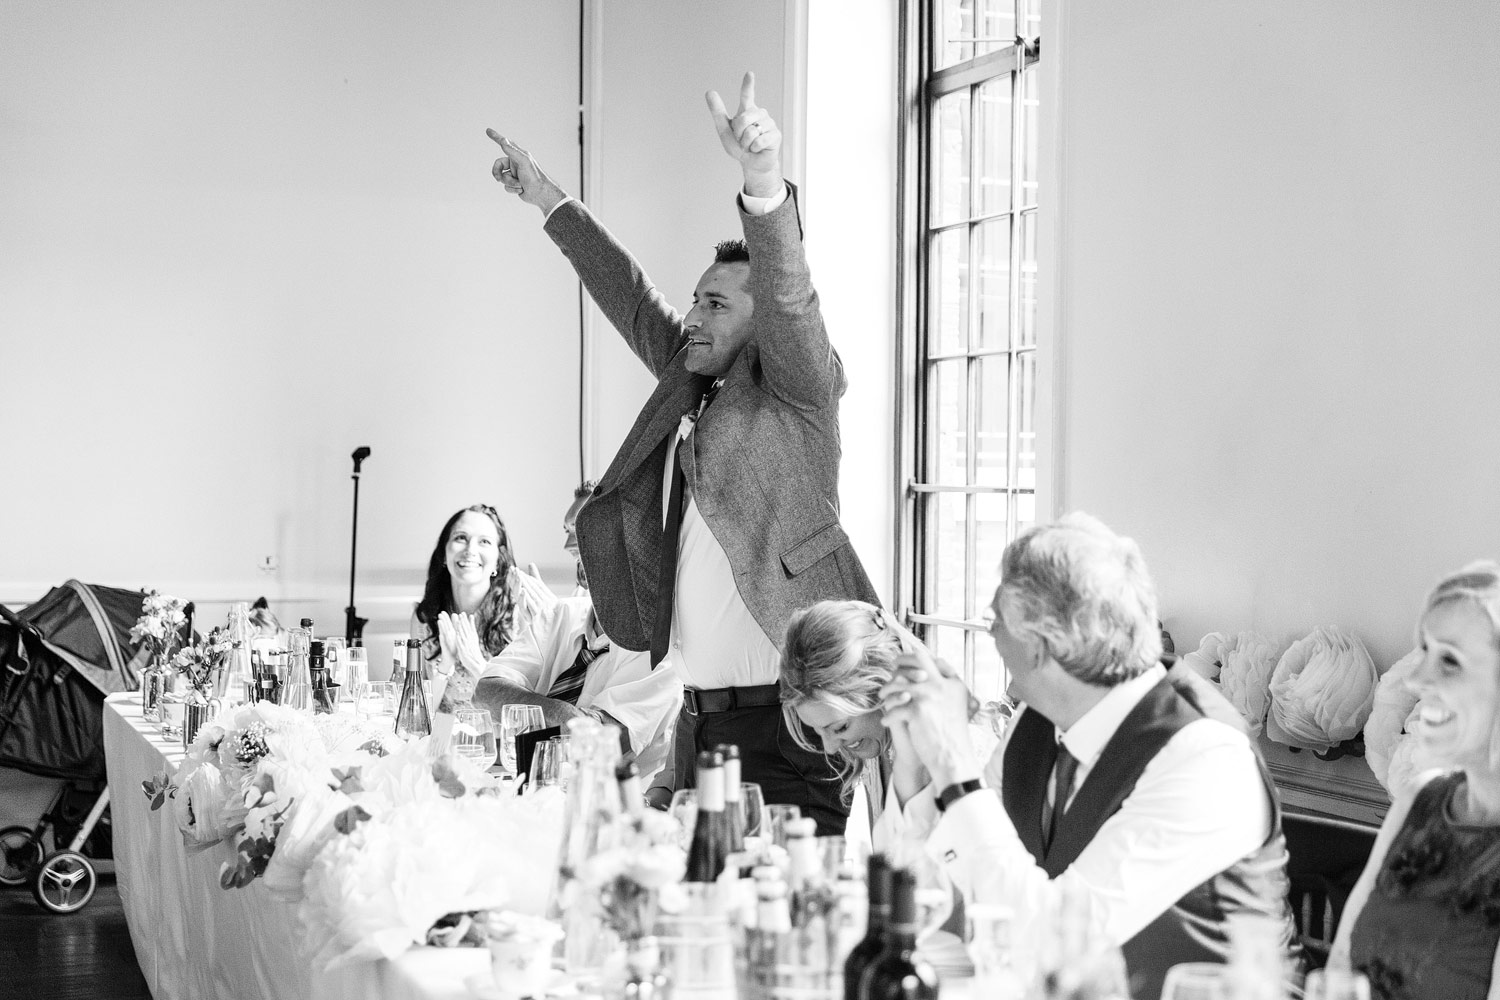 Groom punching the air at his wedding at the Brewery in Moorgate